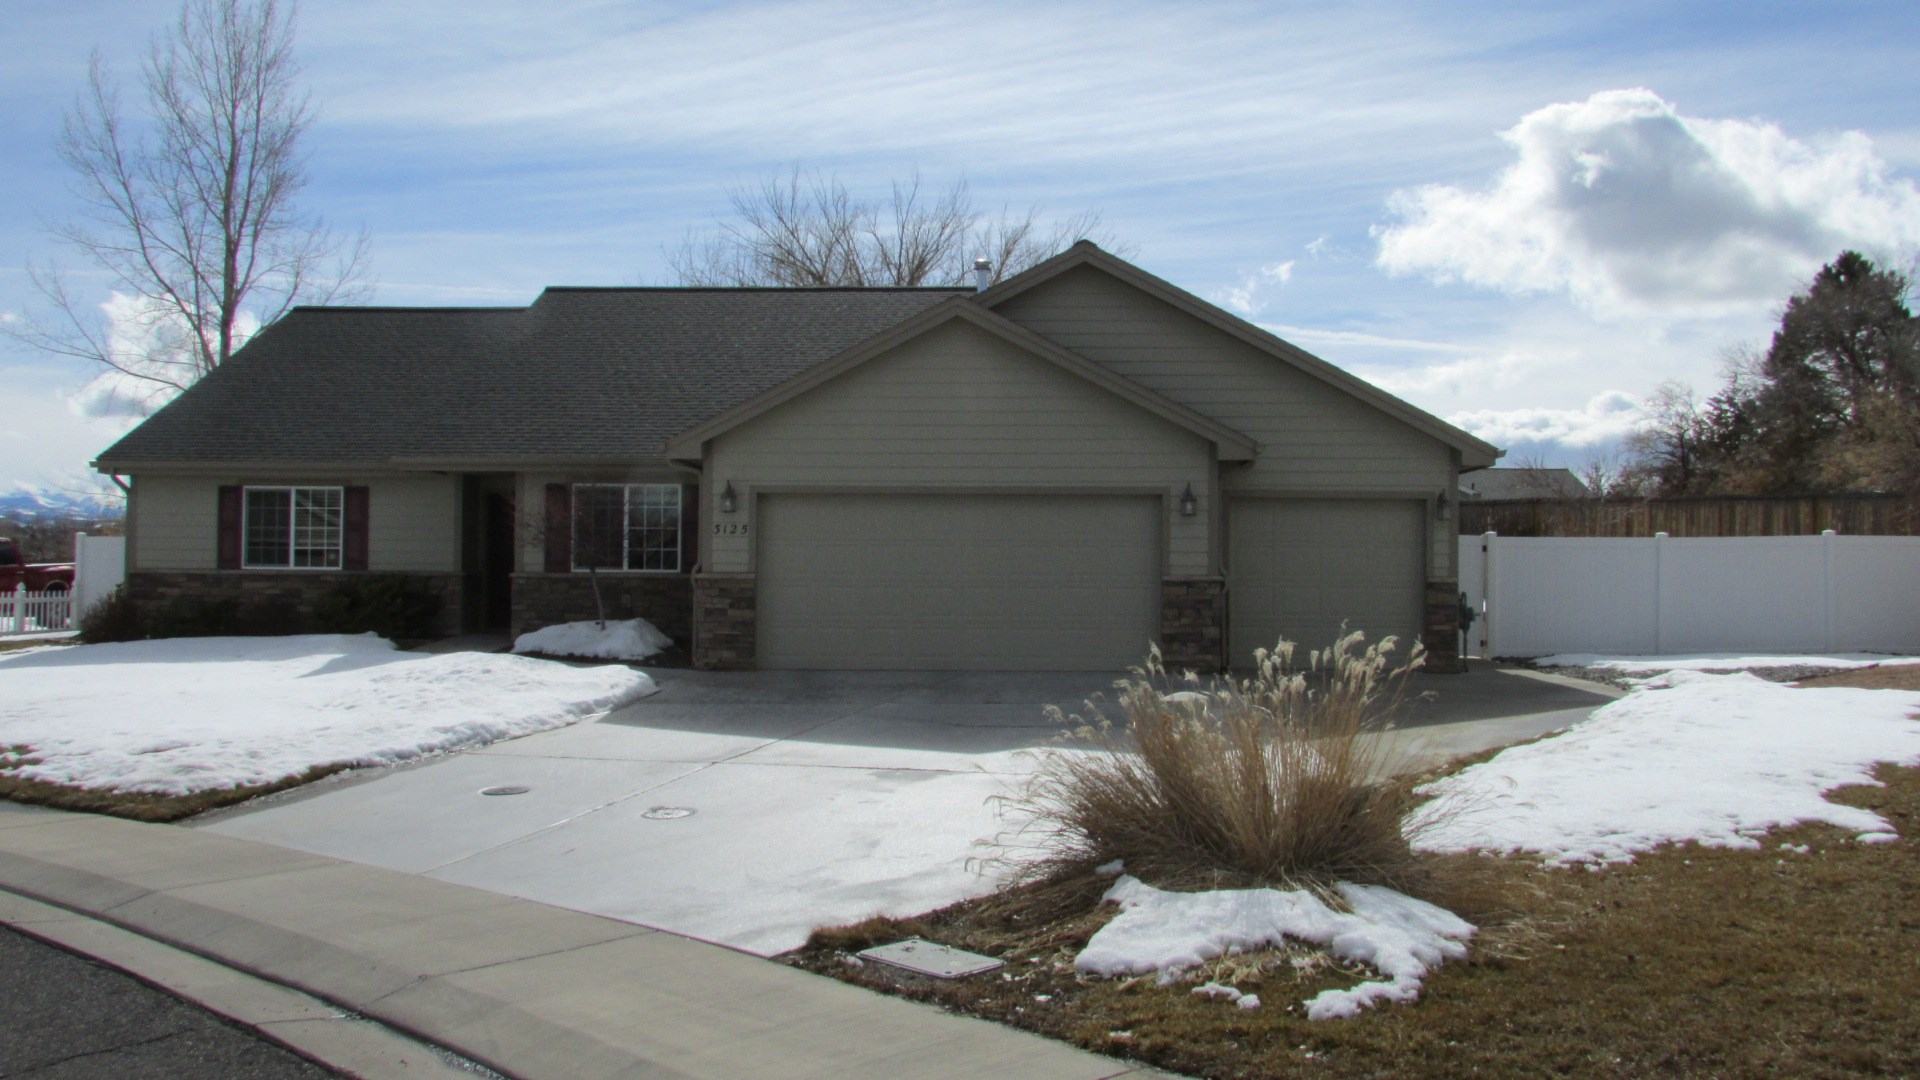 Home on Large Lot For Sale in Town Montrose, Colorado